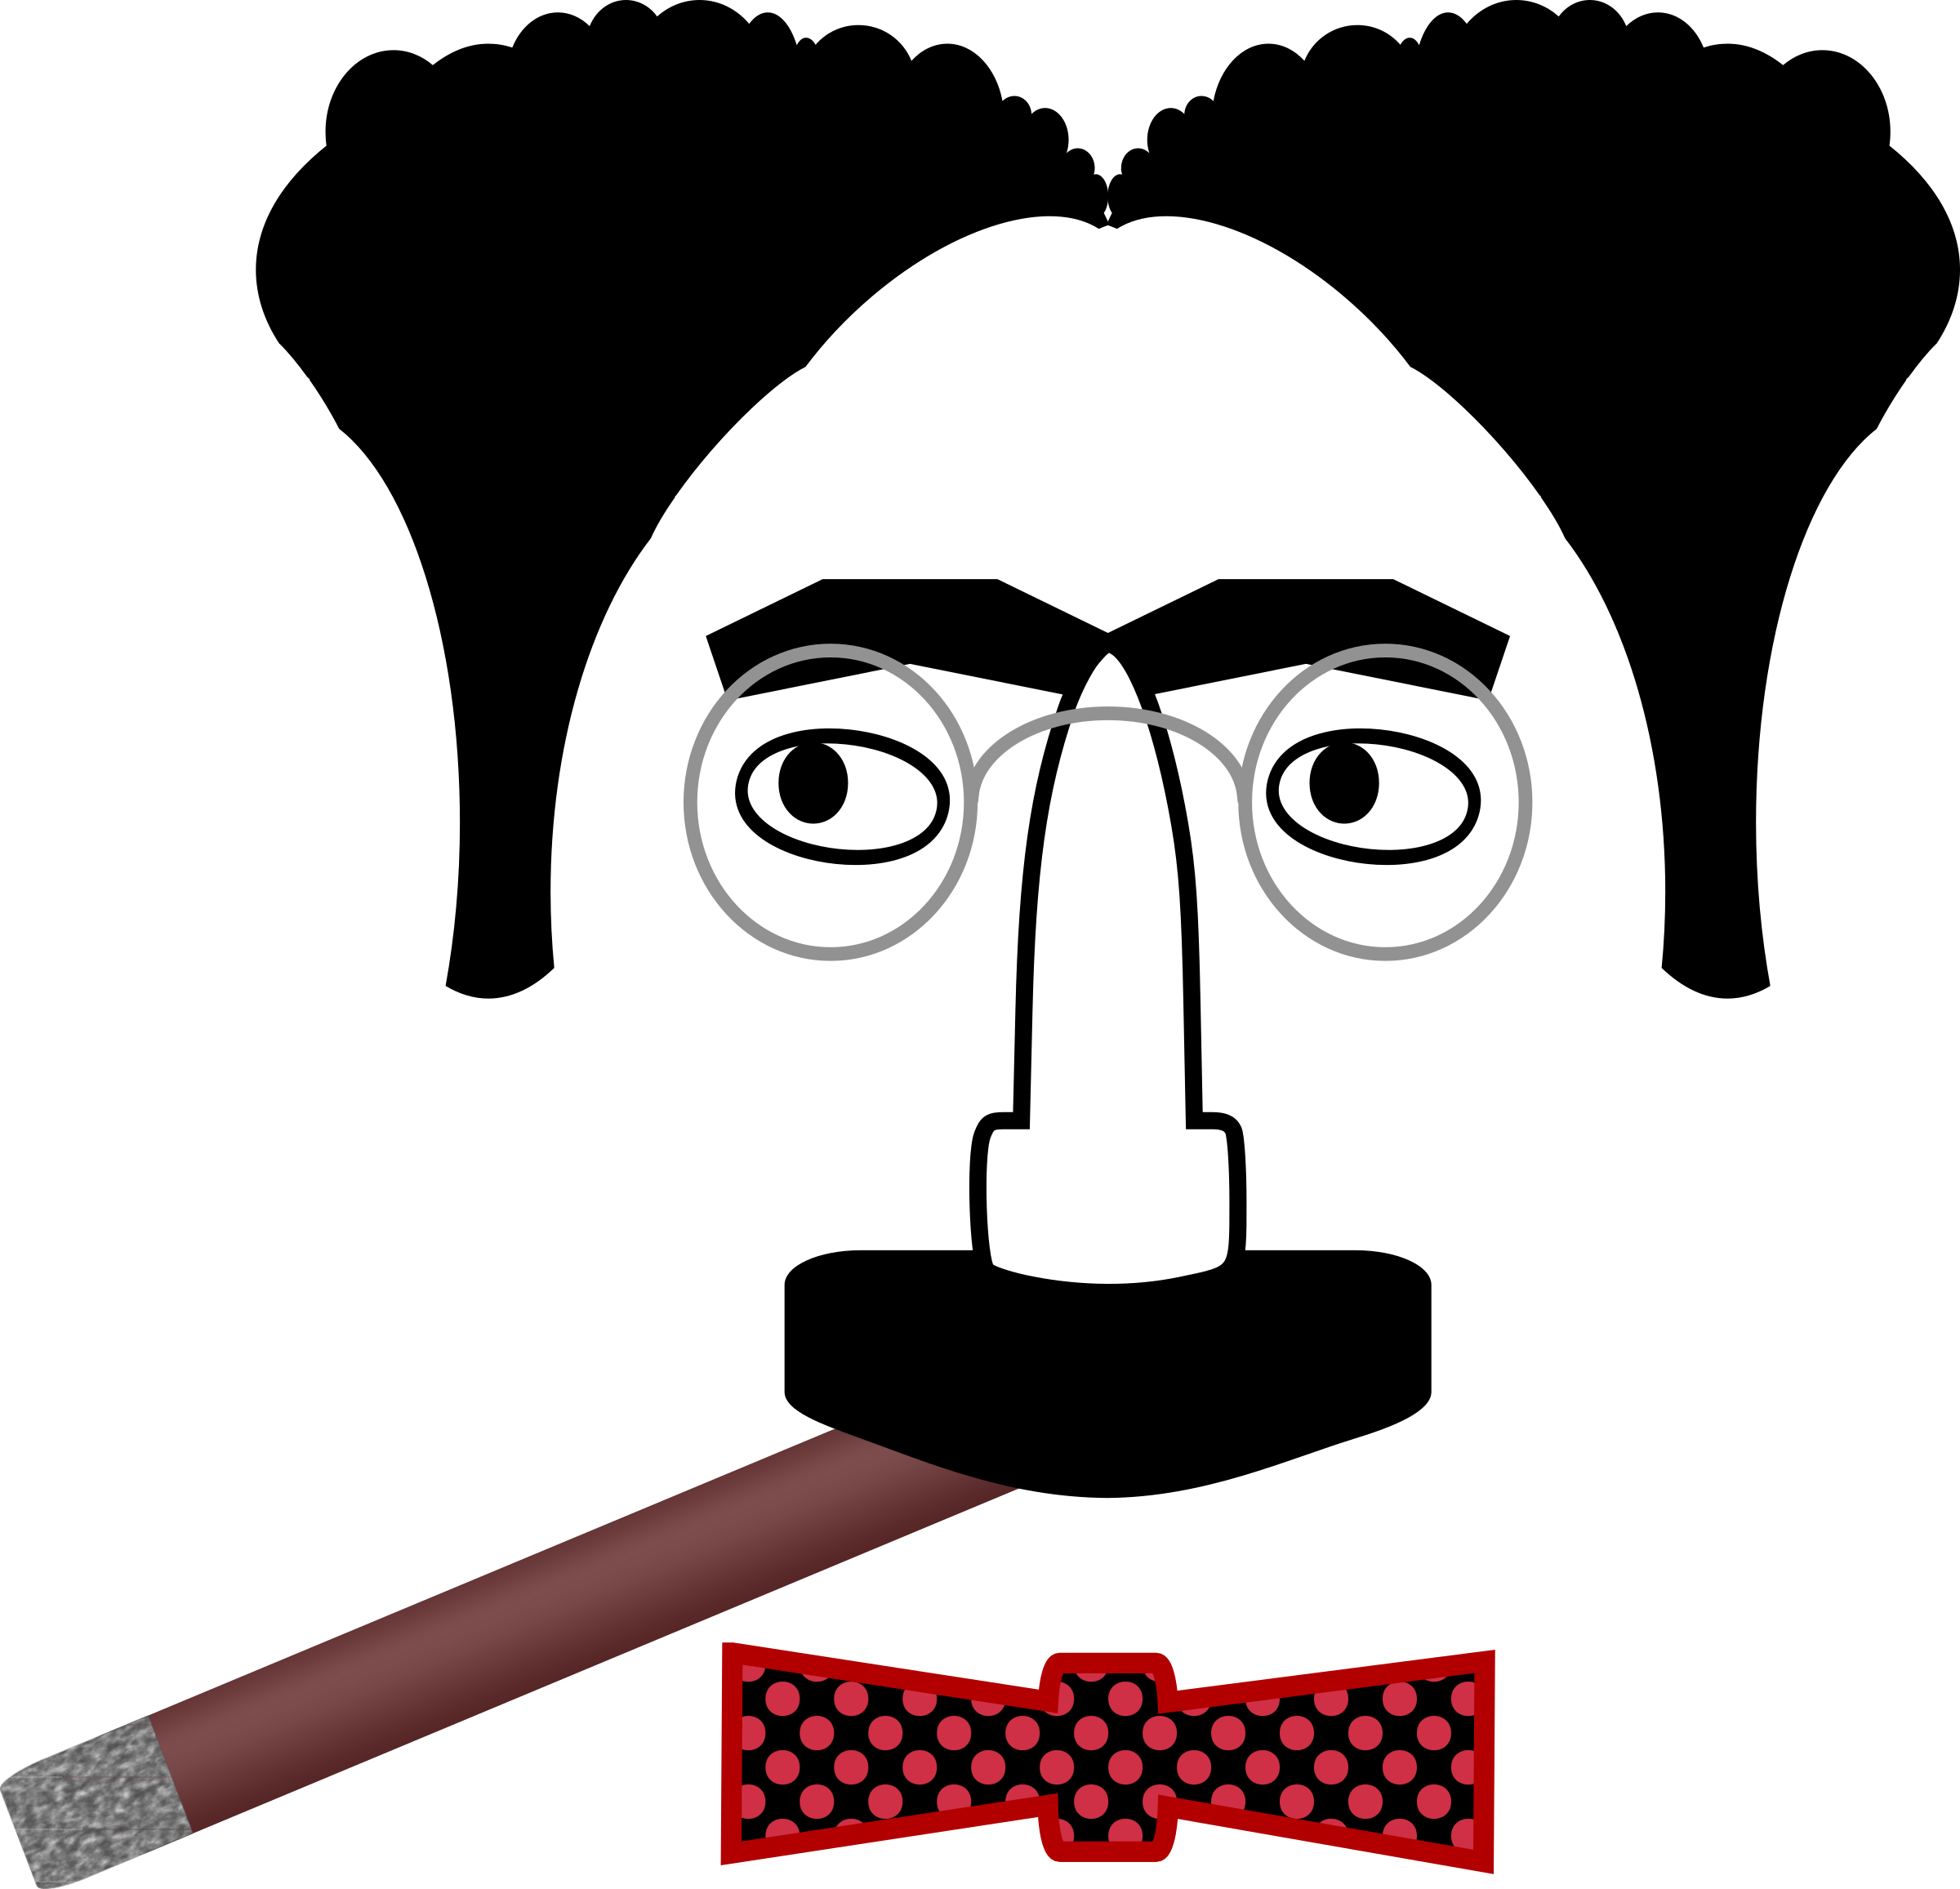 Groucho marx glasses png. Icons free and downloads